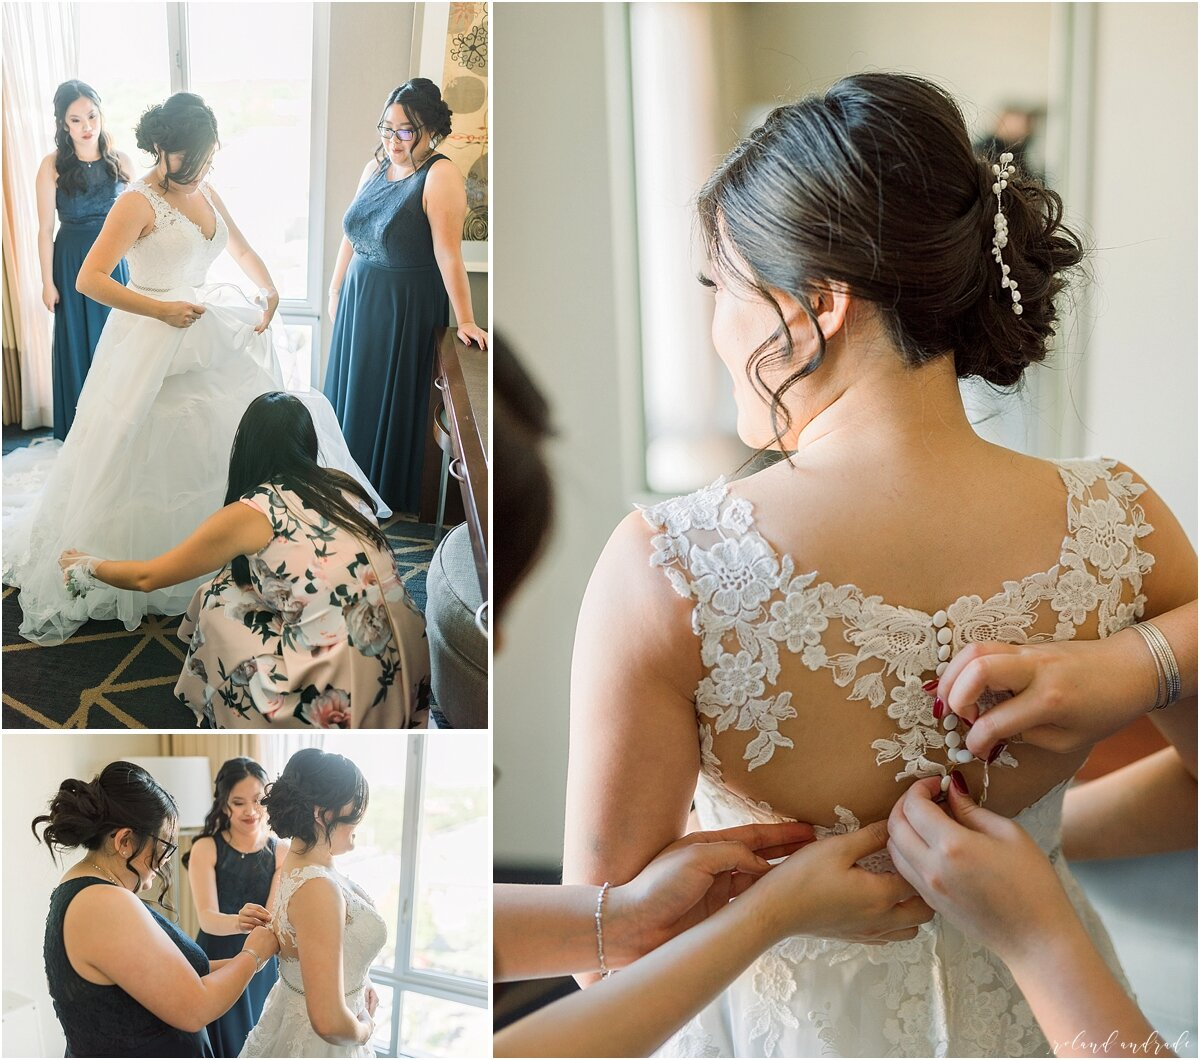 Light and Airy Wedding Photographer Chicago, Furama Chinese Wedding Photographer + Chicago Latino Photography + Naperville Wedding Photographer + Chicago Engagement Photographer + Best Photographer In Chicago_0012.jpg